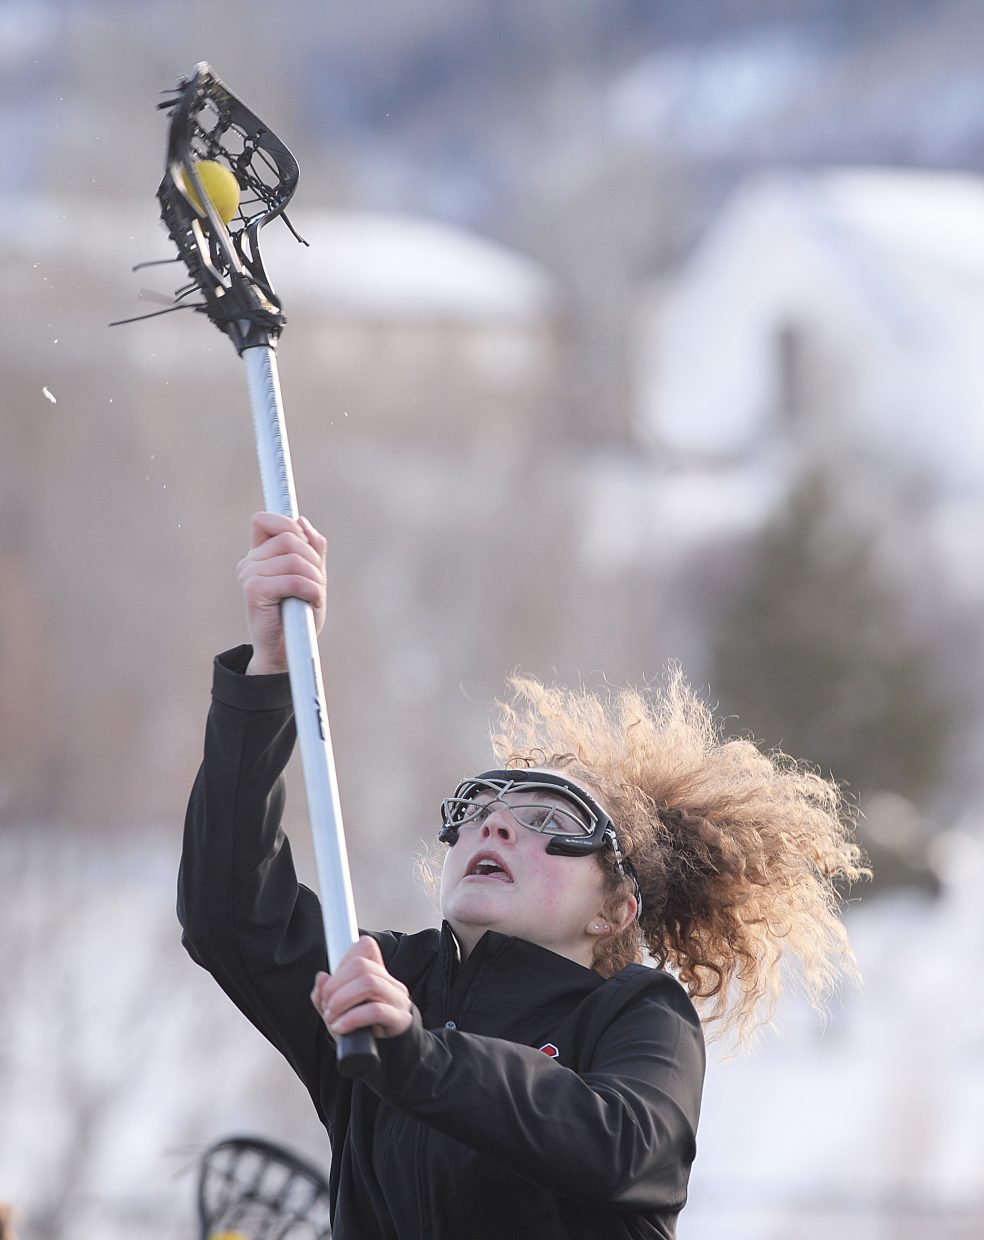 Steamboat Springs freshman Riley Schott catches a pass during a drill in practice Tuesday at the high school's athletic field. The girls lacrosse team heads to Sante Fe, New Mexico, during the weekend to play its first games of the 2017 season.